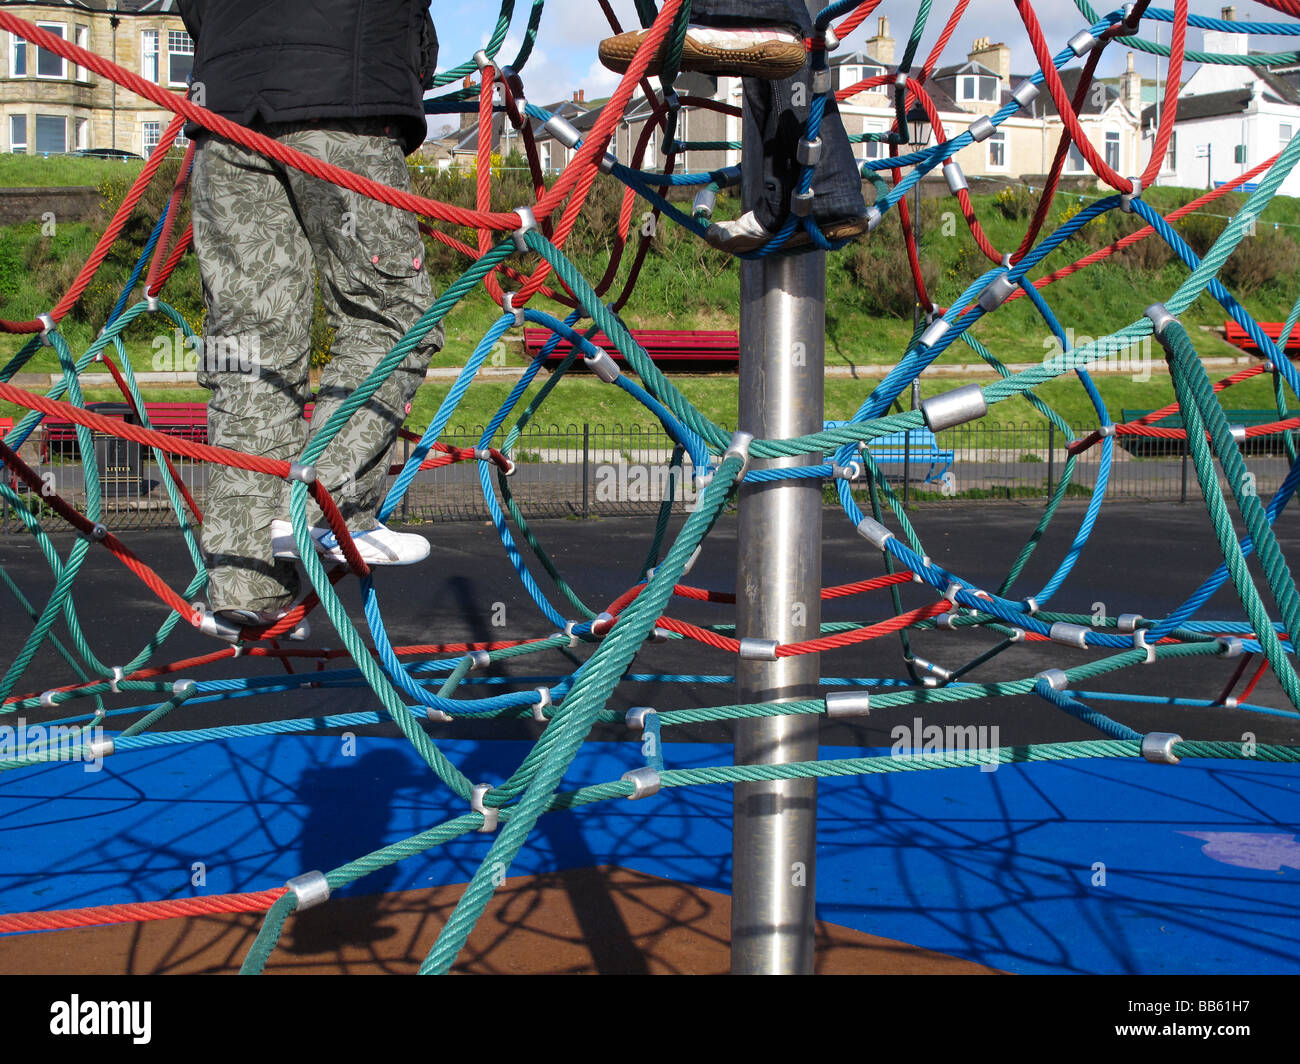 Rope Climbing Frame Stock Photos & Rope Climbing Frame Stock Images ...